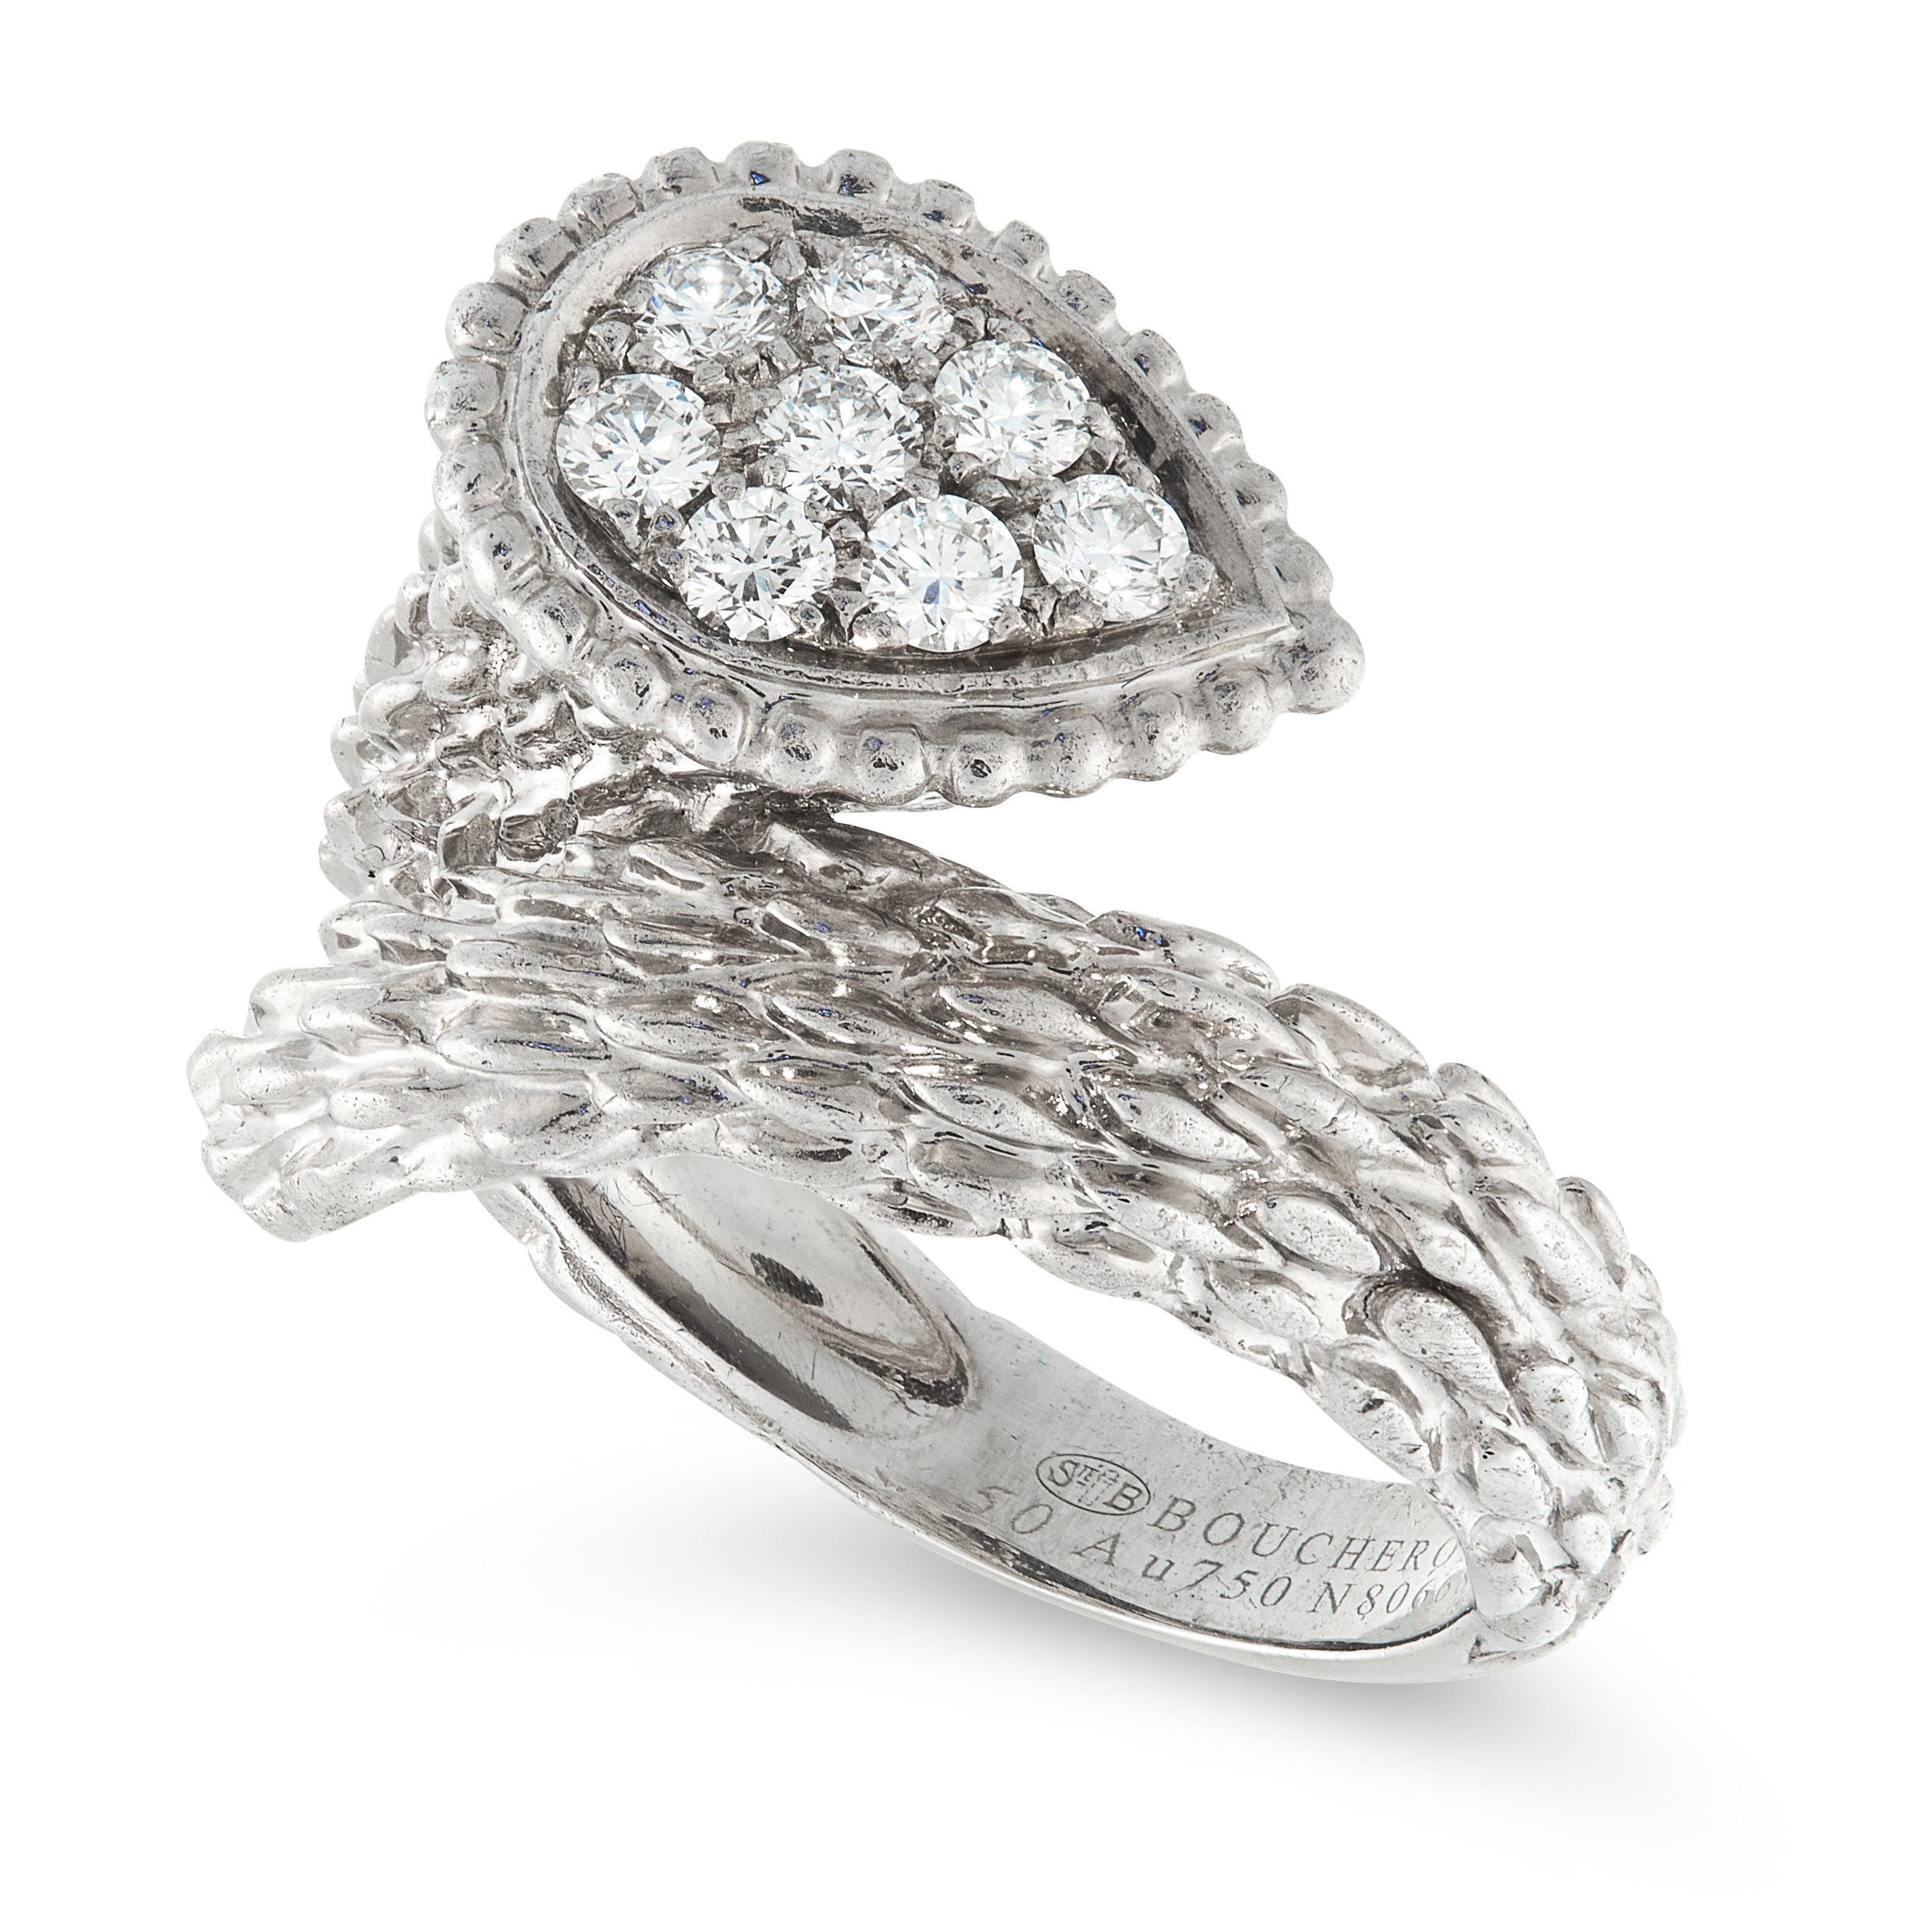 A SERPENT BOHEME DIAMOND SNAKE RING, BOUCHERON in 18ct white gold, the textured body coiled around